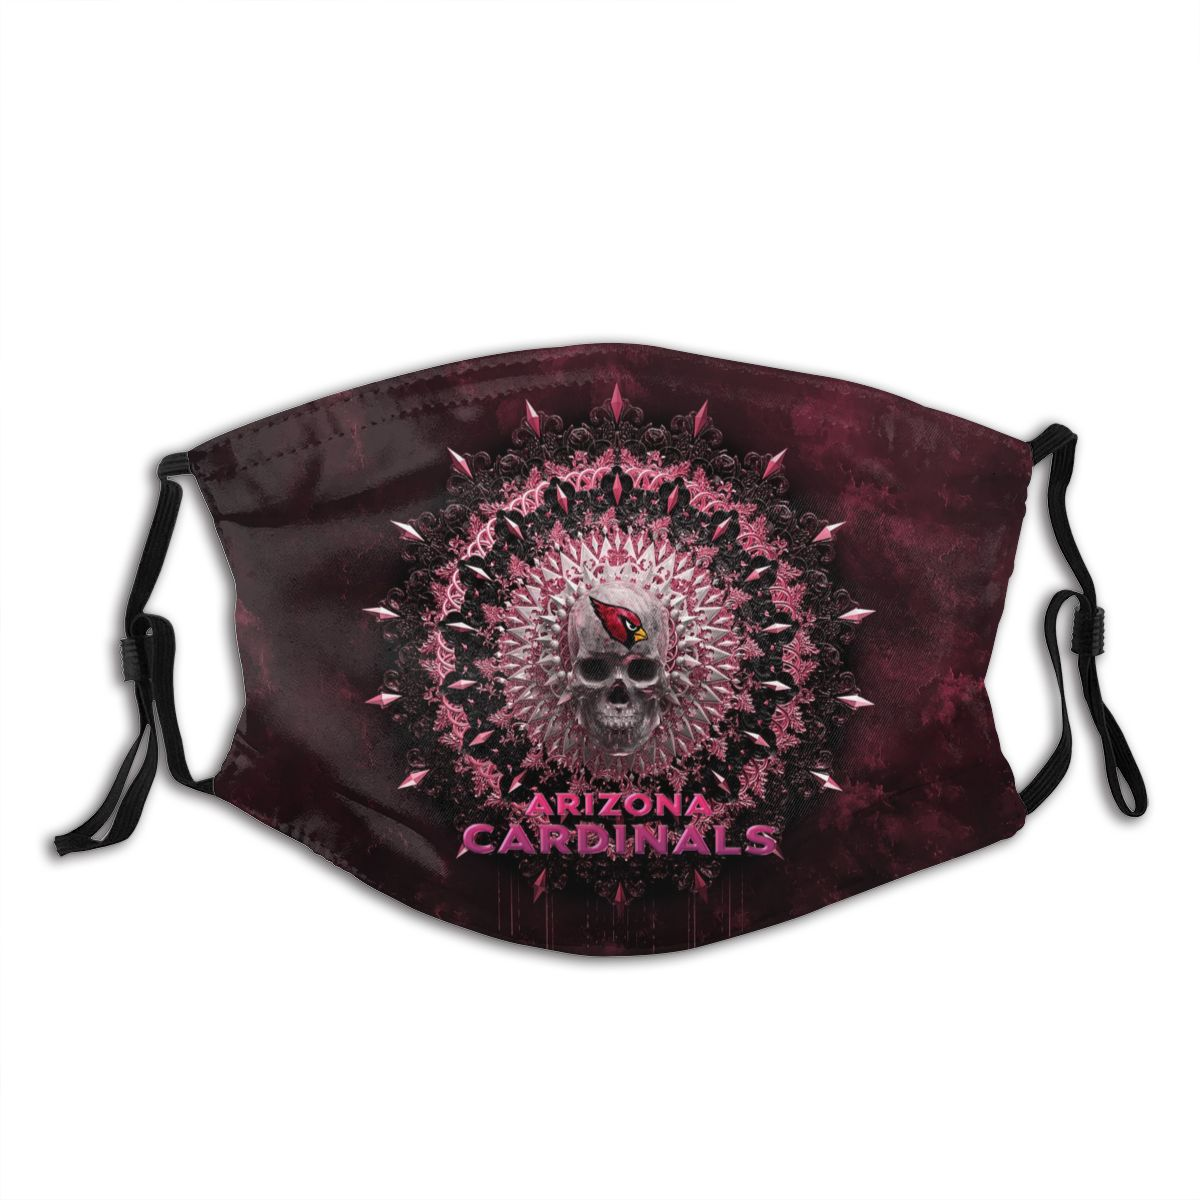 Cardinals Adult Cloth Face Covering With Filter